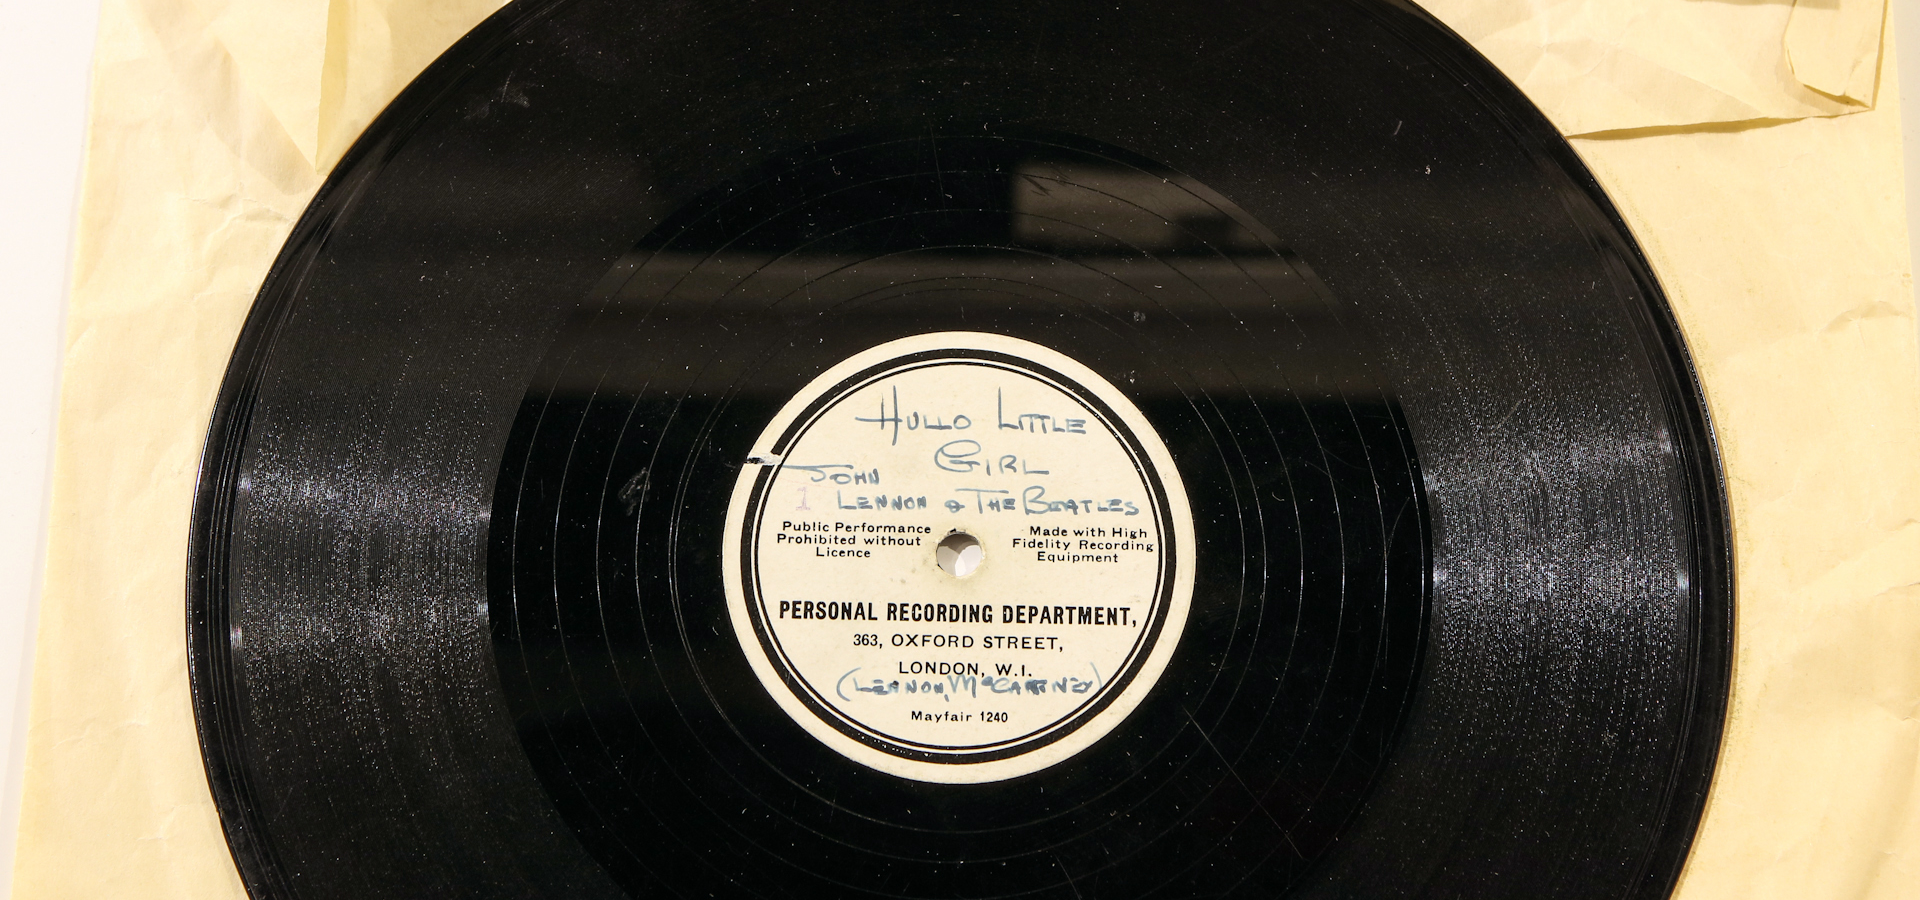 Holy Grail: The record that launched The Beatles